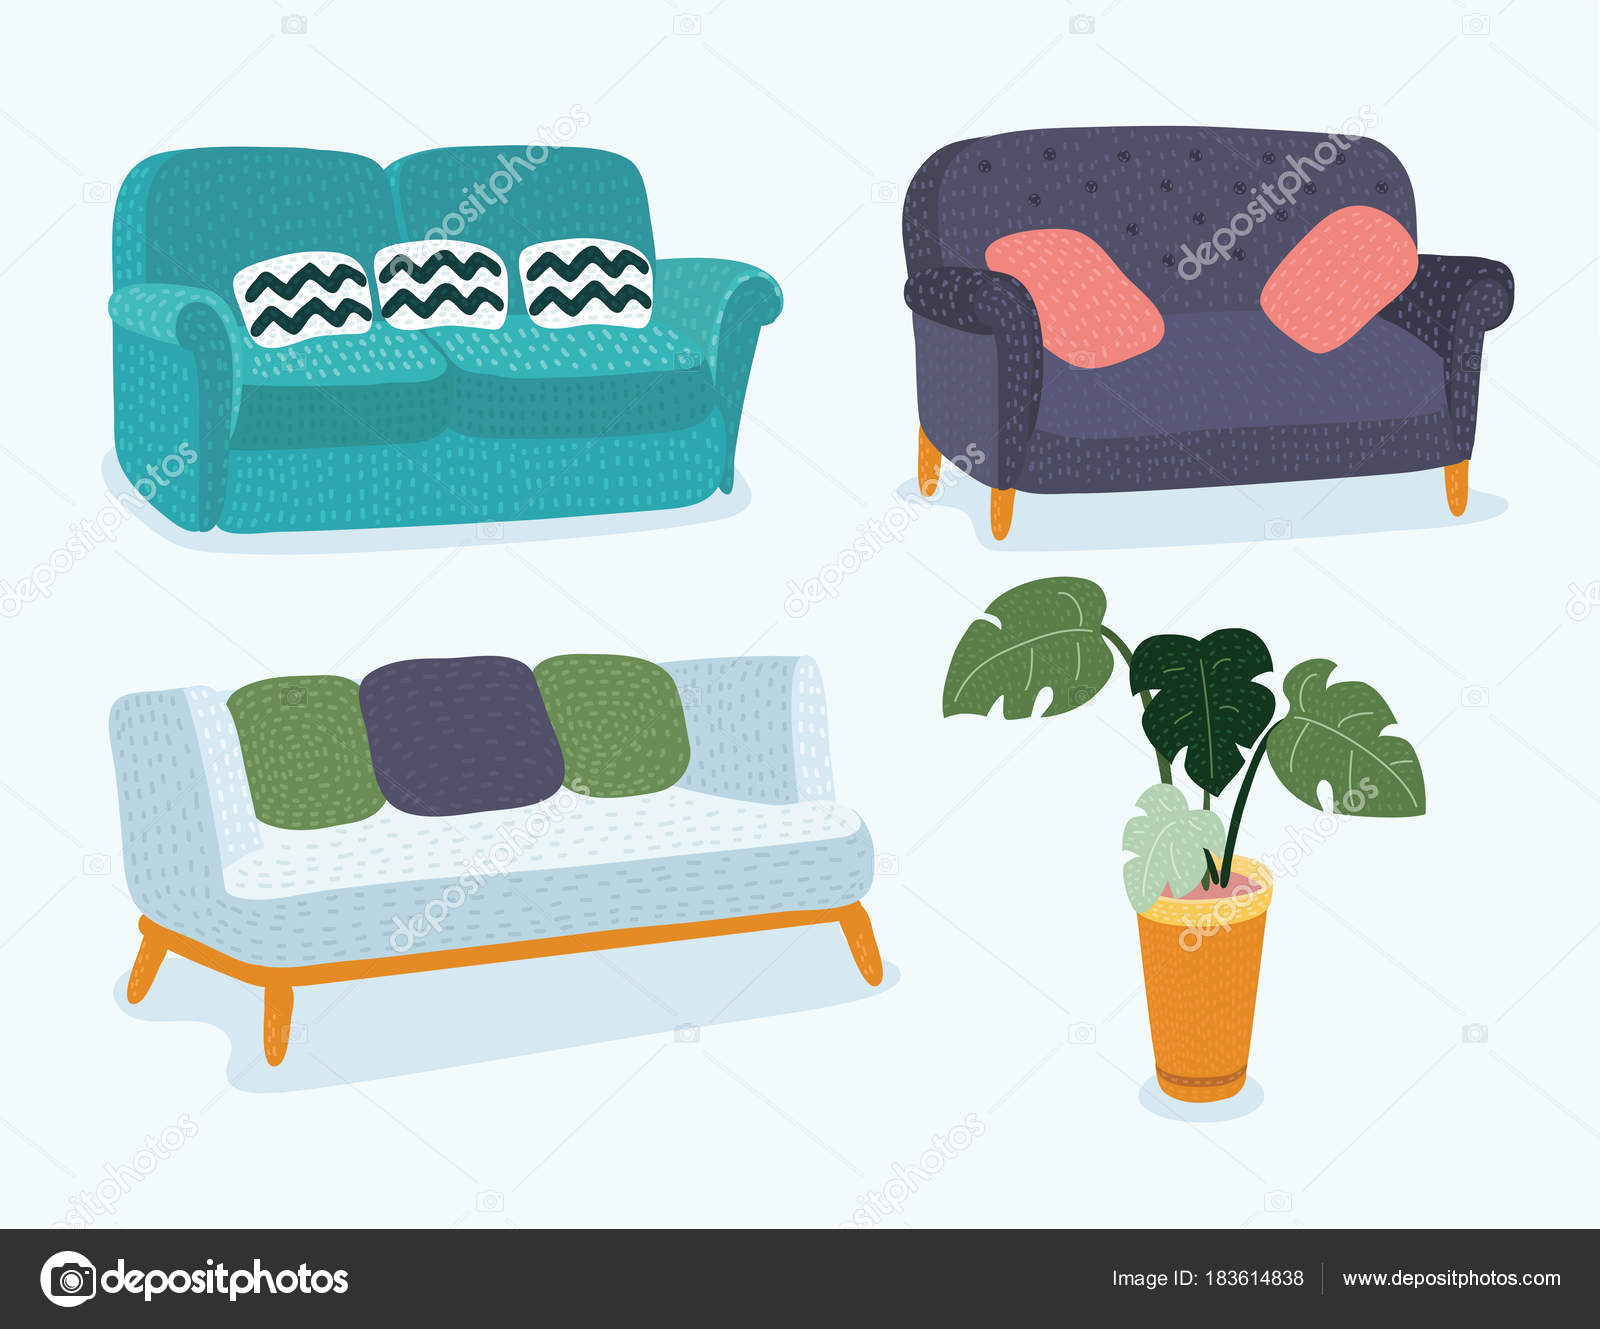 Sofa Set Vector Free Download Sofa Icon Set Vector Illustration Stock Vector Cosmaa 183614838